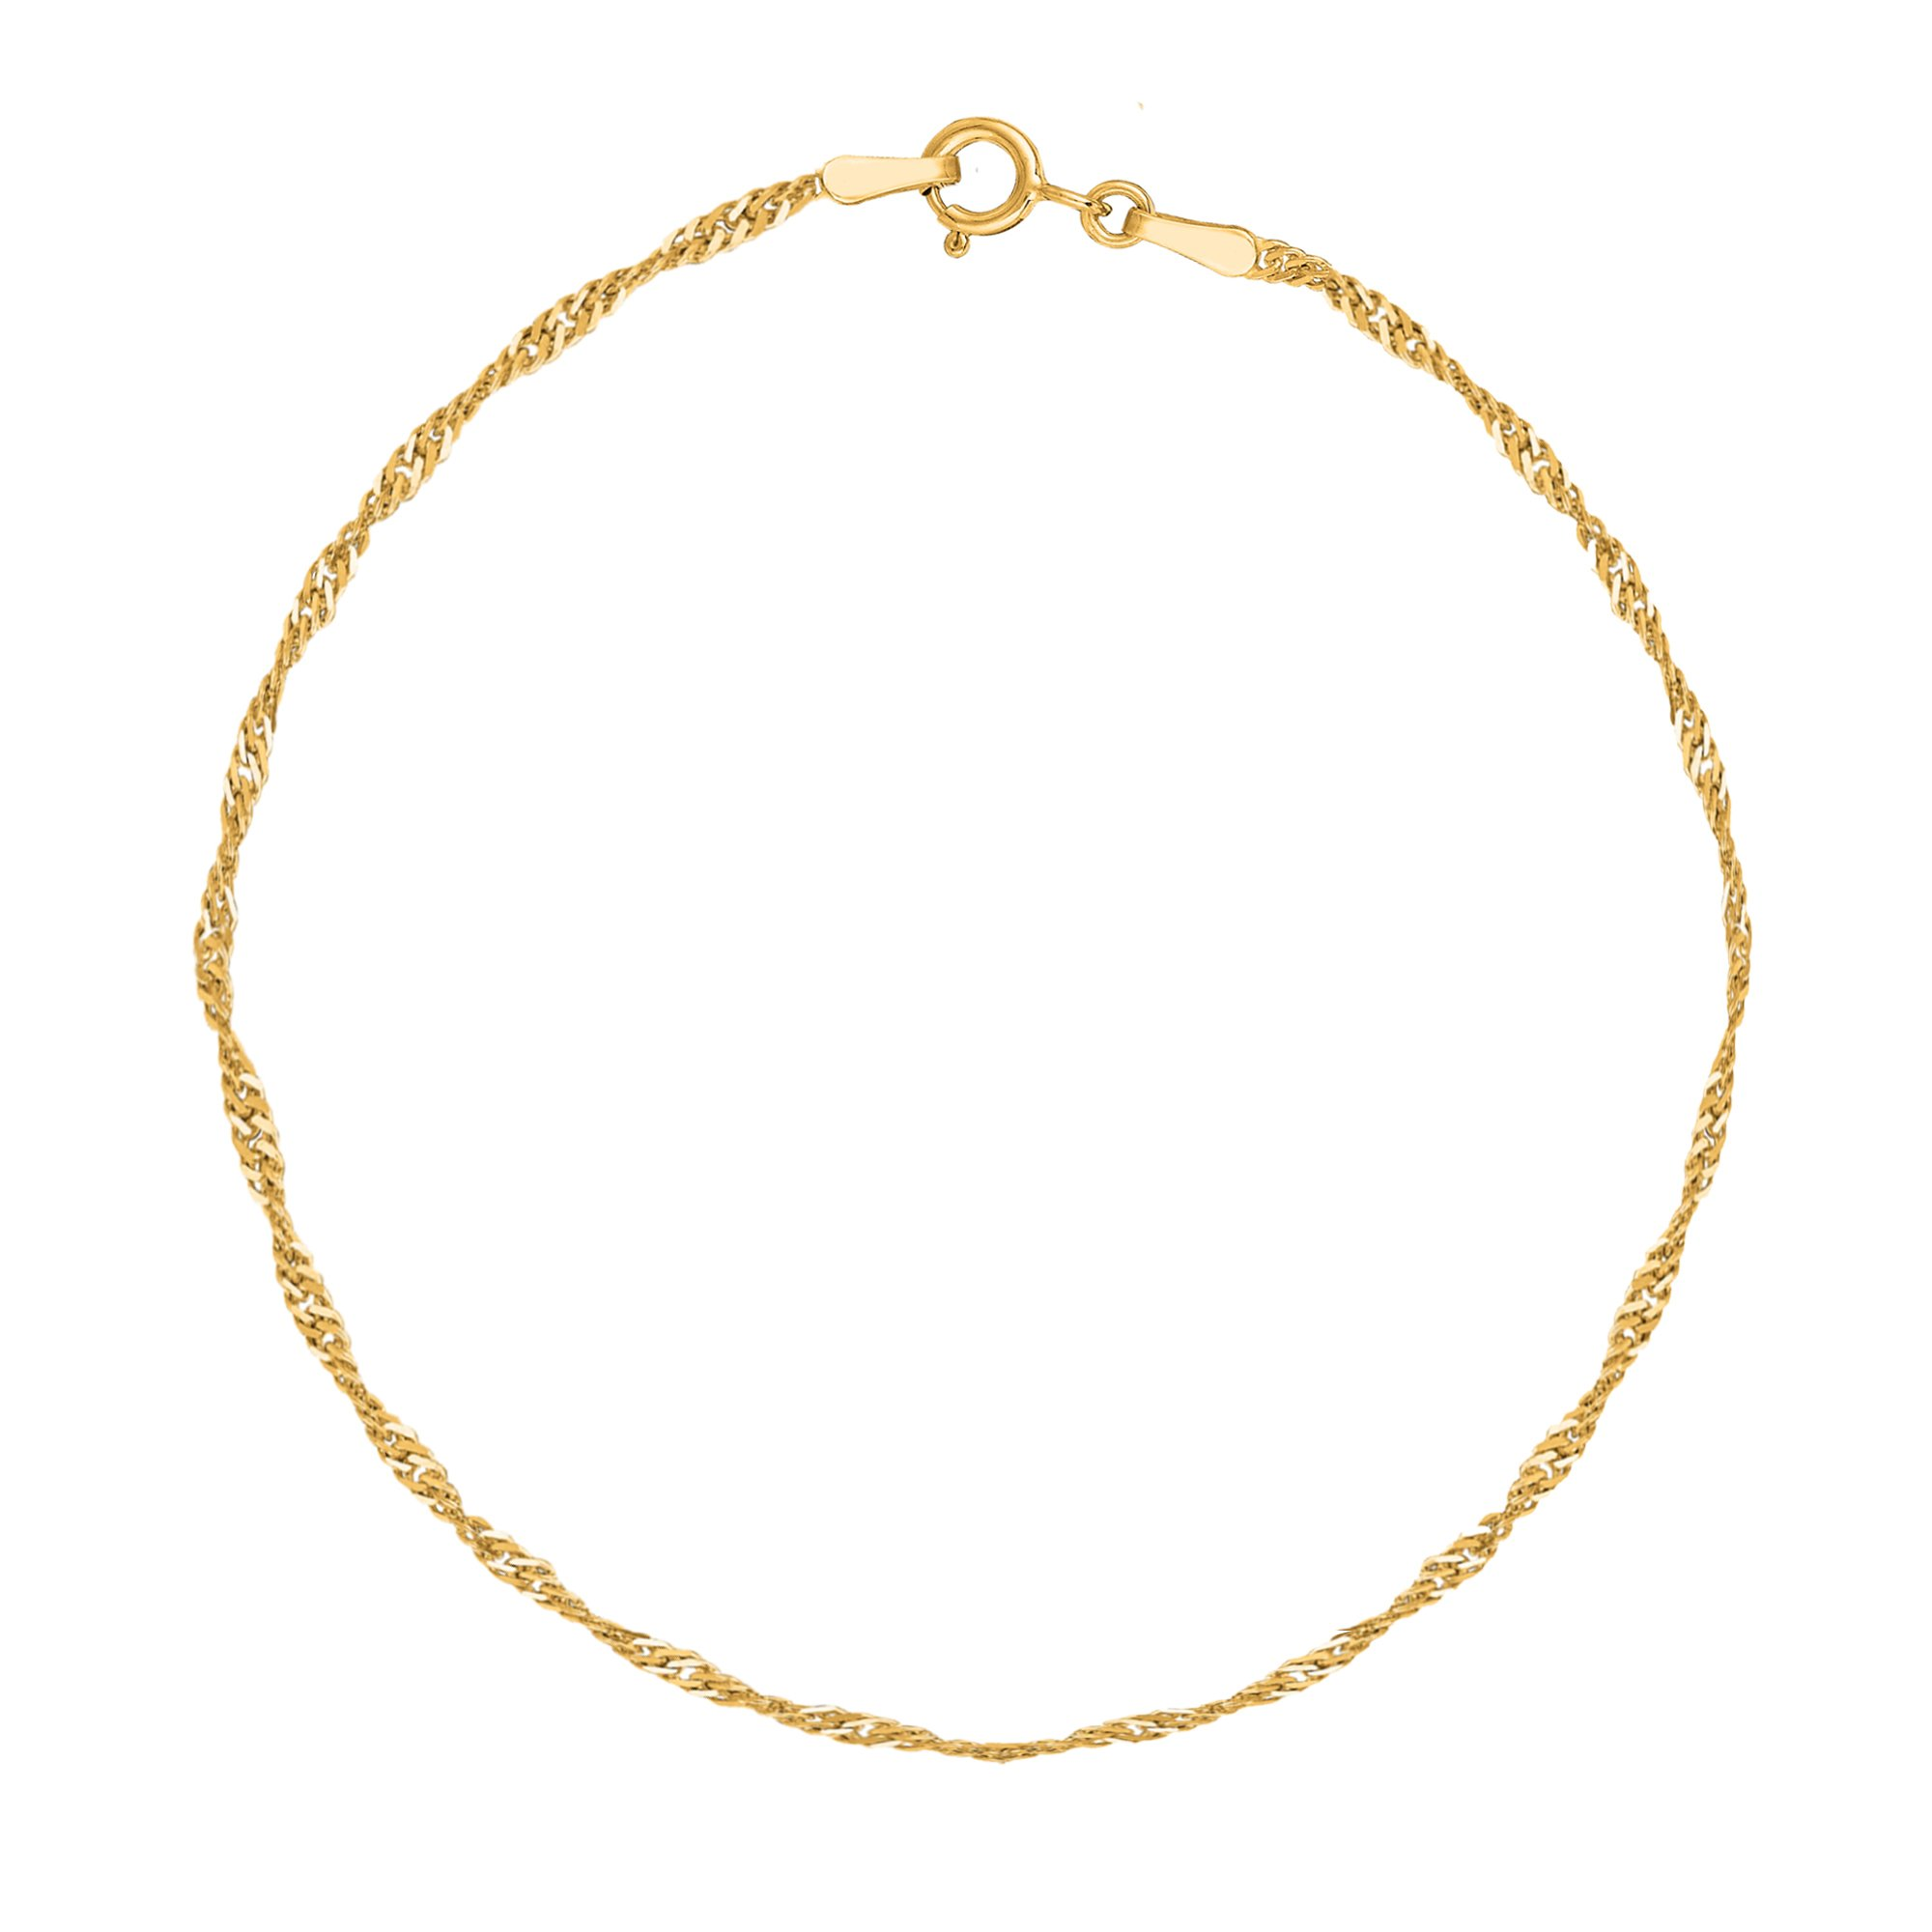 14k Real Yellow Gold Singapore Sparkle Anklet Ankle Bracelet 10 Inches